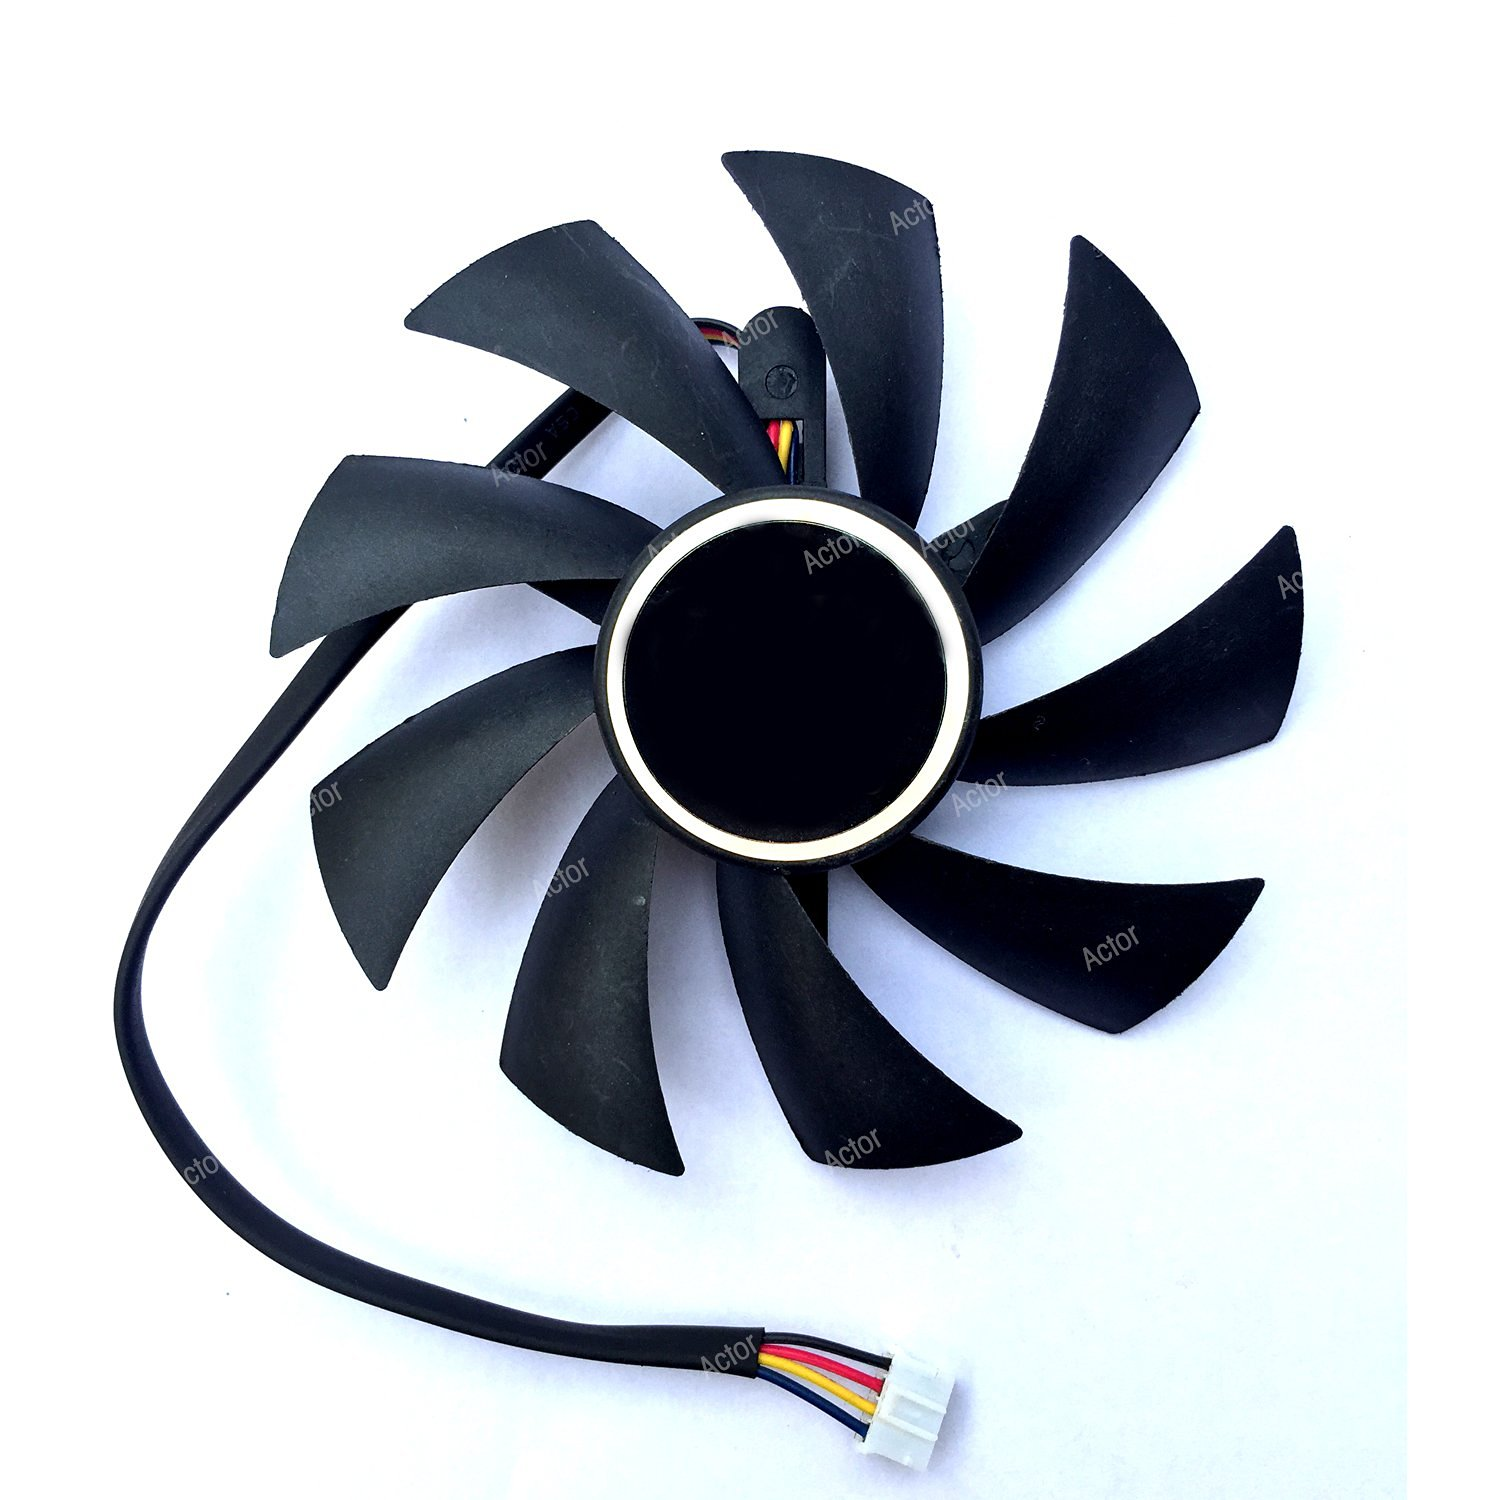 PLA09215D12H DC Graphics Card 12V 0.55A 87mm HD7800 HD7850 HD7870 Cooling Fan 4Wire 4Pin Brushless Cooling Fan Cooler